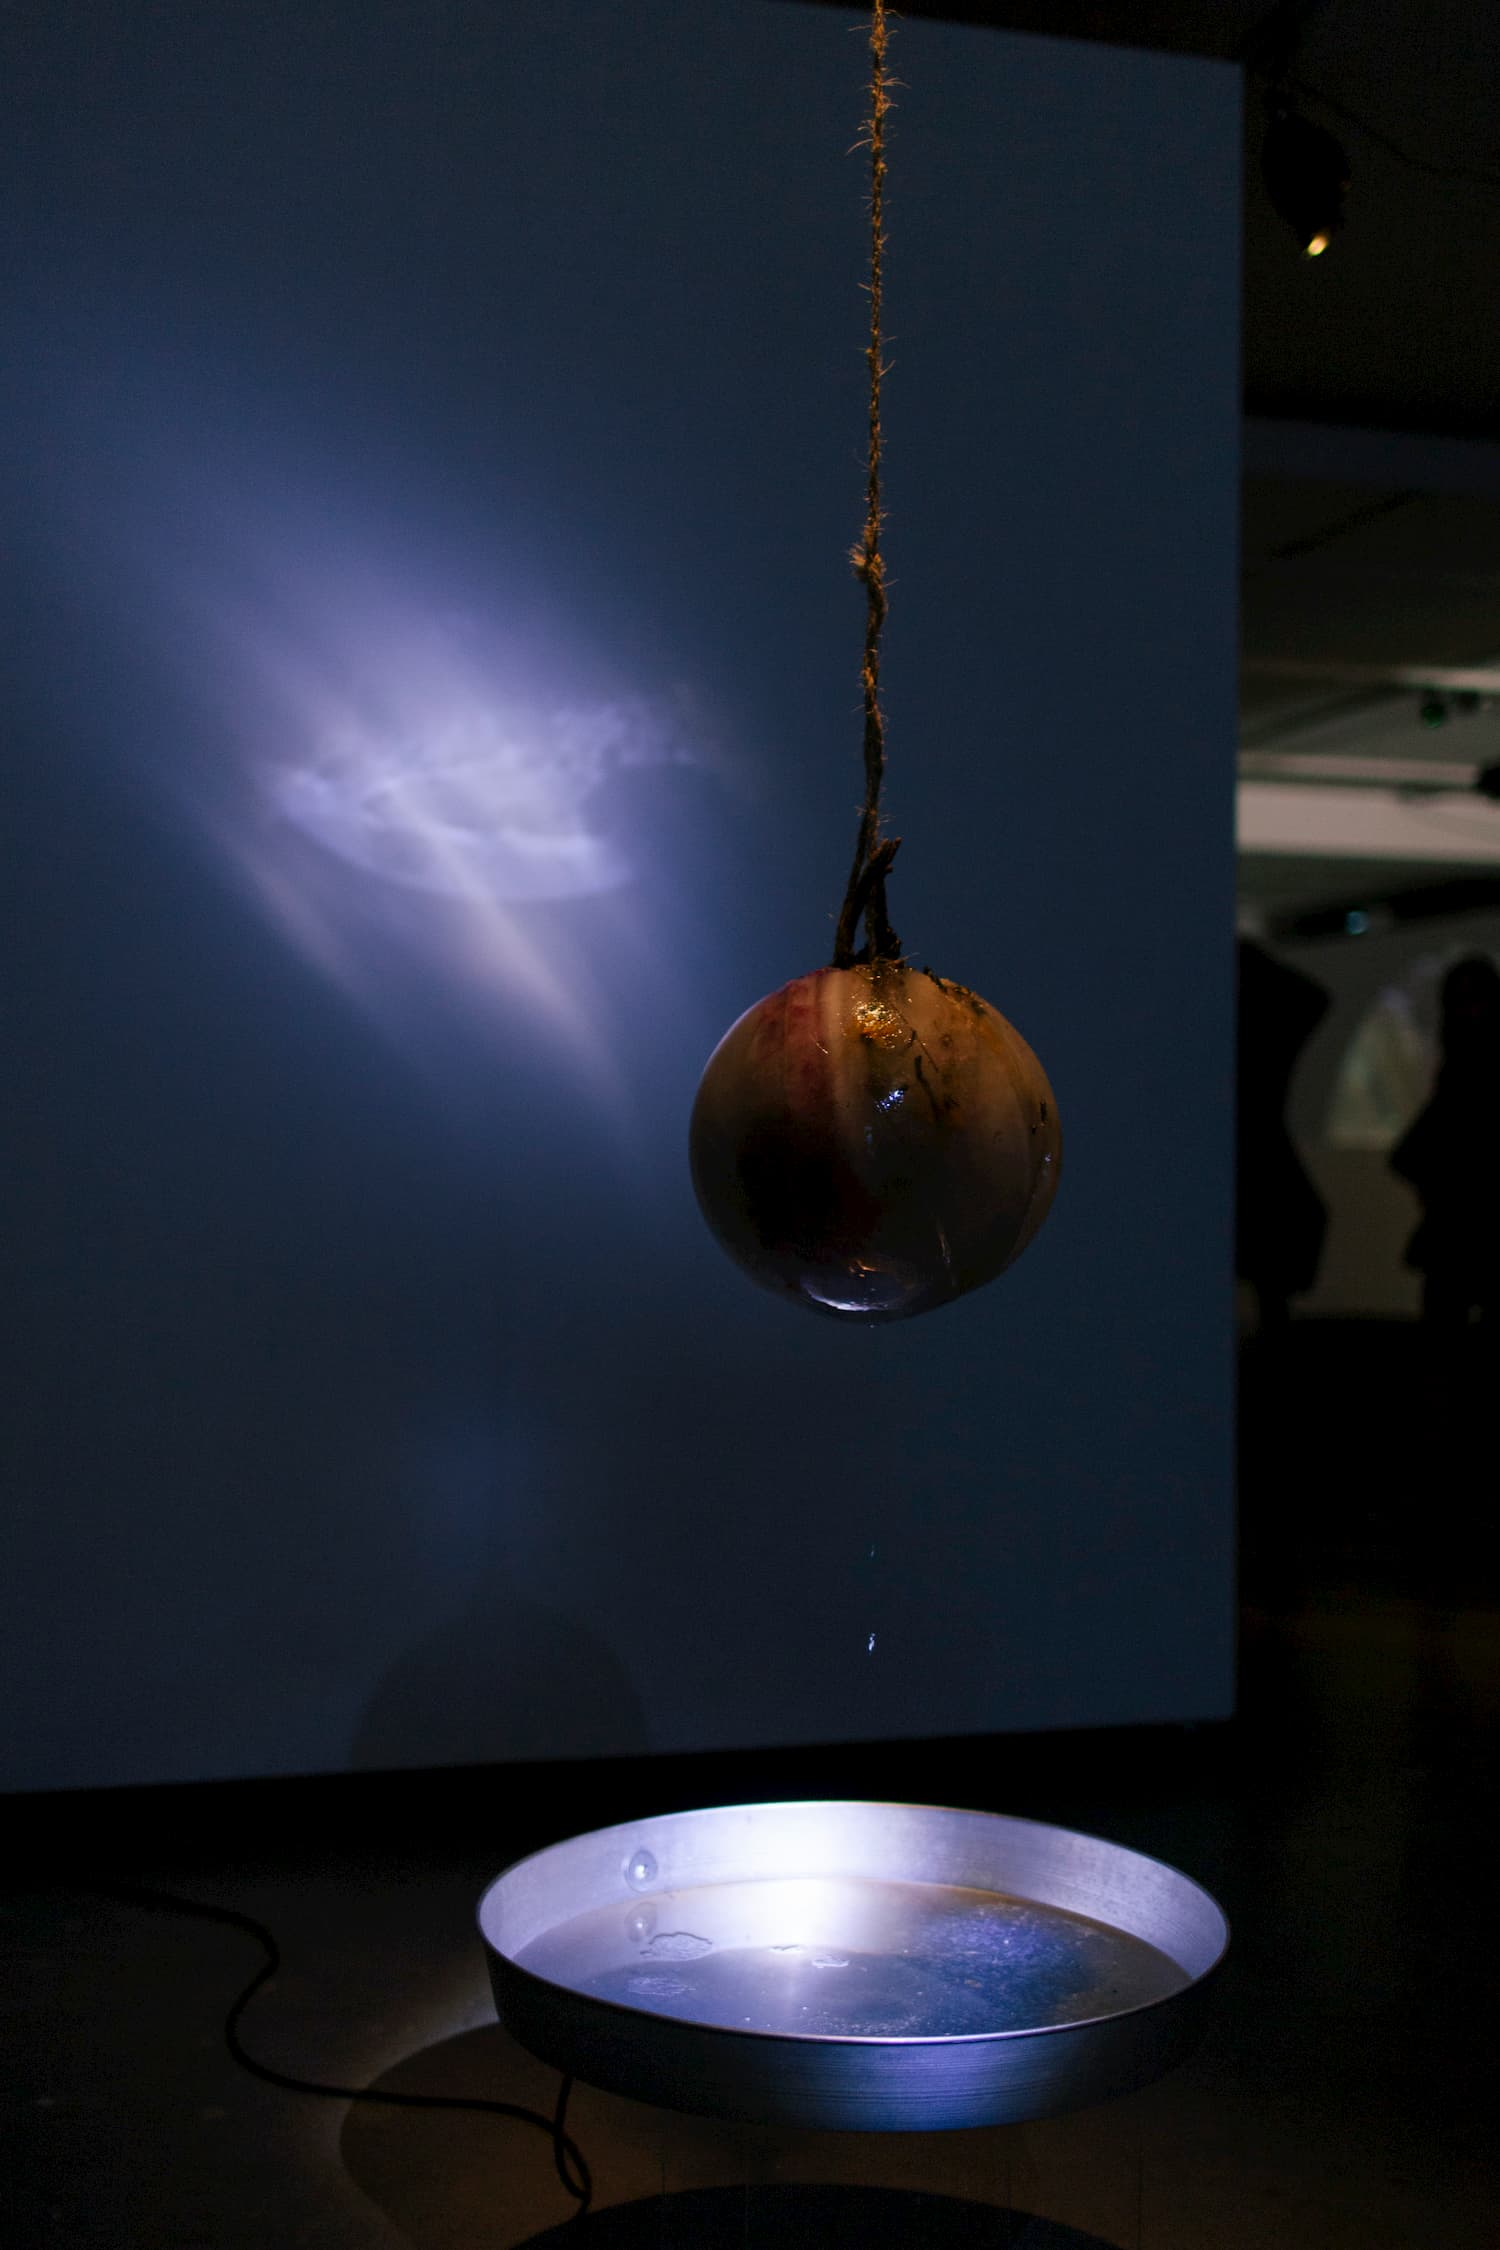 Sphere hanging by a style of thread over a pan of water. Joteva's solo show.